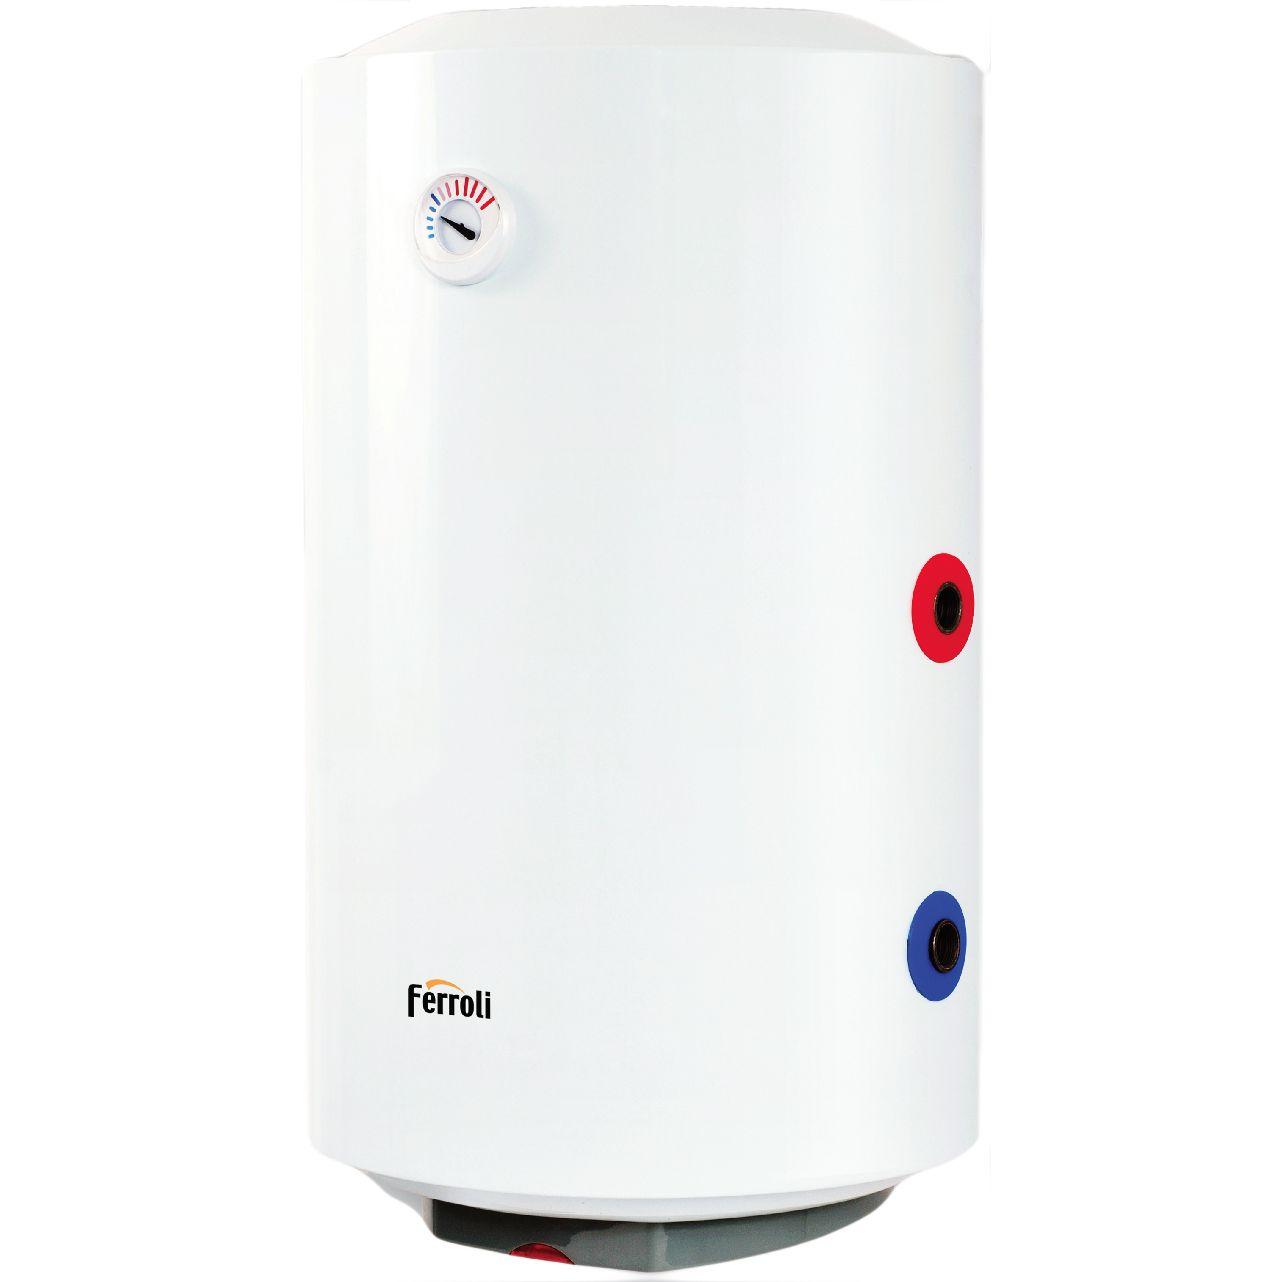 Boiler termoelectric cu serpentina Ferroli Power Thermo 80V, 1500 W, 80 l, 0.8 Mpa, Alb imagine fornello.ro